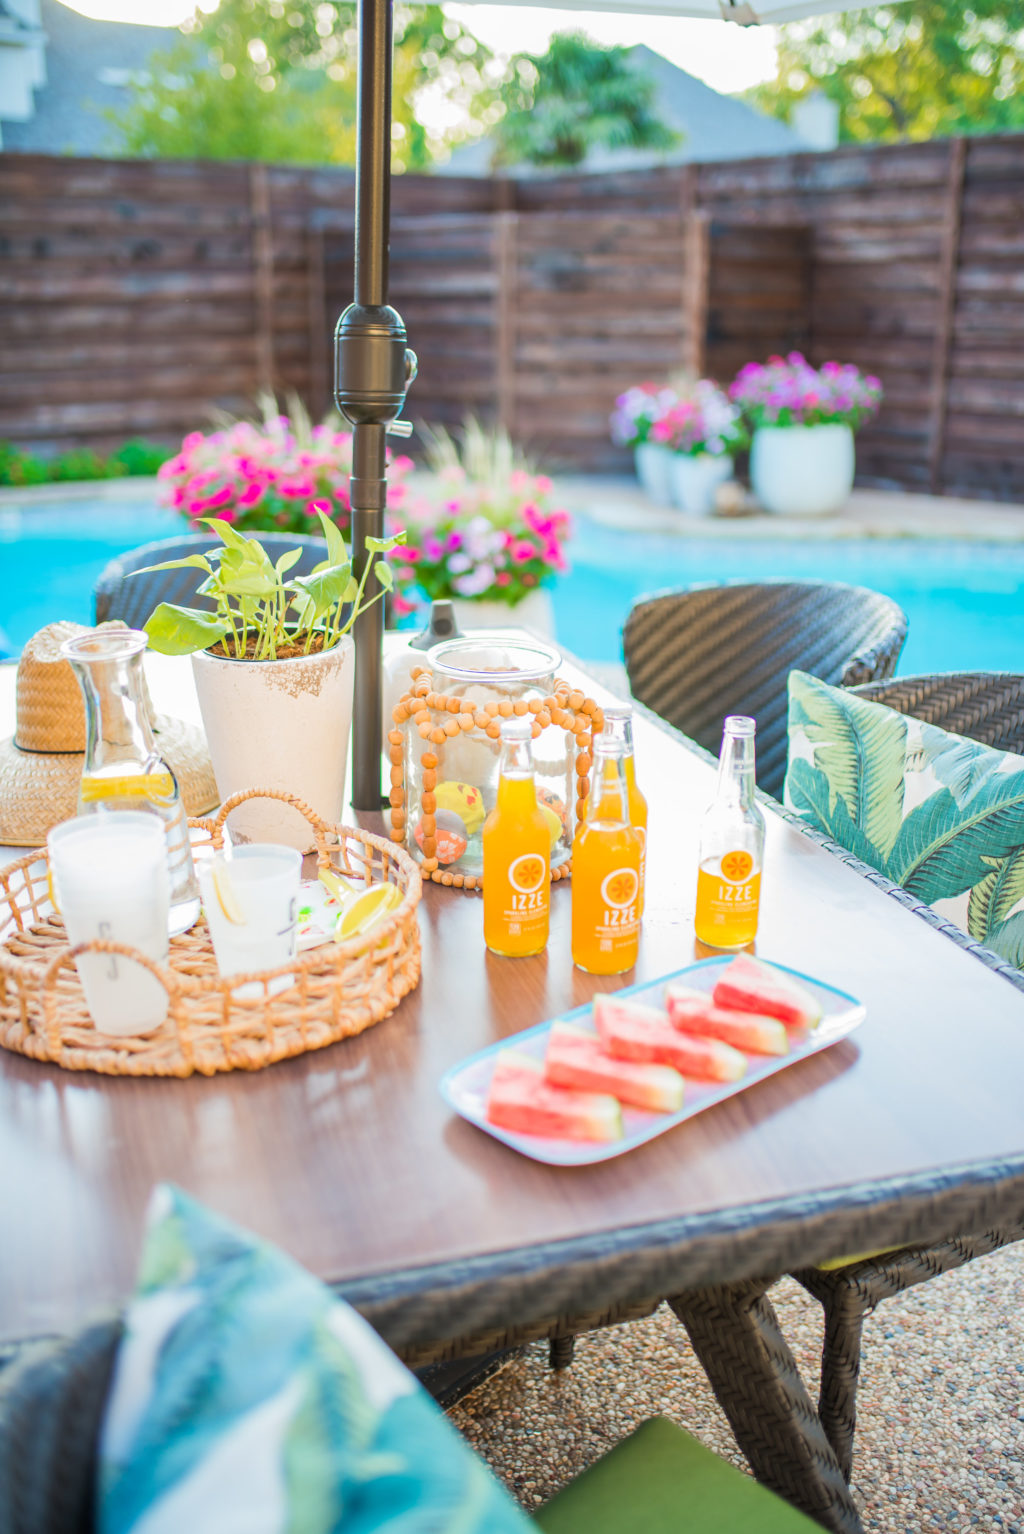 watermelon snacks and drinks to serve by your pool during summer